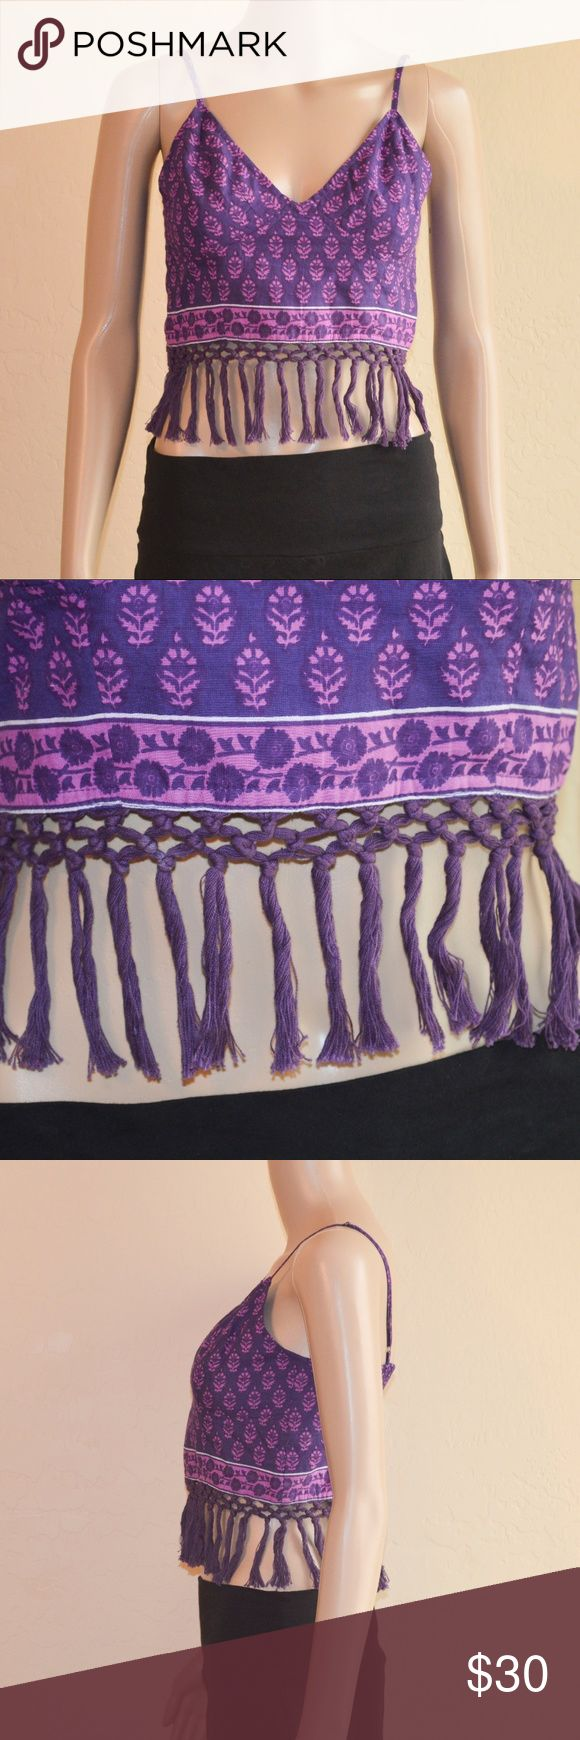 """Free People One Purple Eastern Fringe Bralette FP One printed bralette/crop with fringe trimming all around the bottom hem. Stretchy smocking at the back. Adjustable shoulder straps.   Size: M  Measurements Laying Flat -  Underarm to Underarm: 16 1/2"""" Shoulder to Hem: 16 1/2"""" (bottom of fringe)  Material: 100% Cotton  Condition: NWOT. Never worn, recently purchased. Small white mark on the lattice fringe (will come out when cleaned). Free People Tops Crop Tops"""